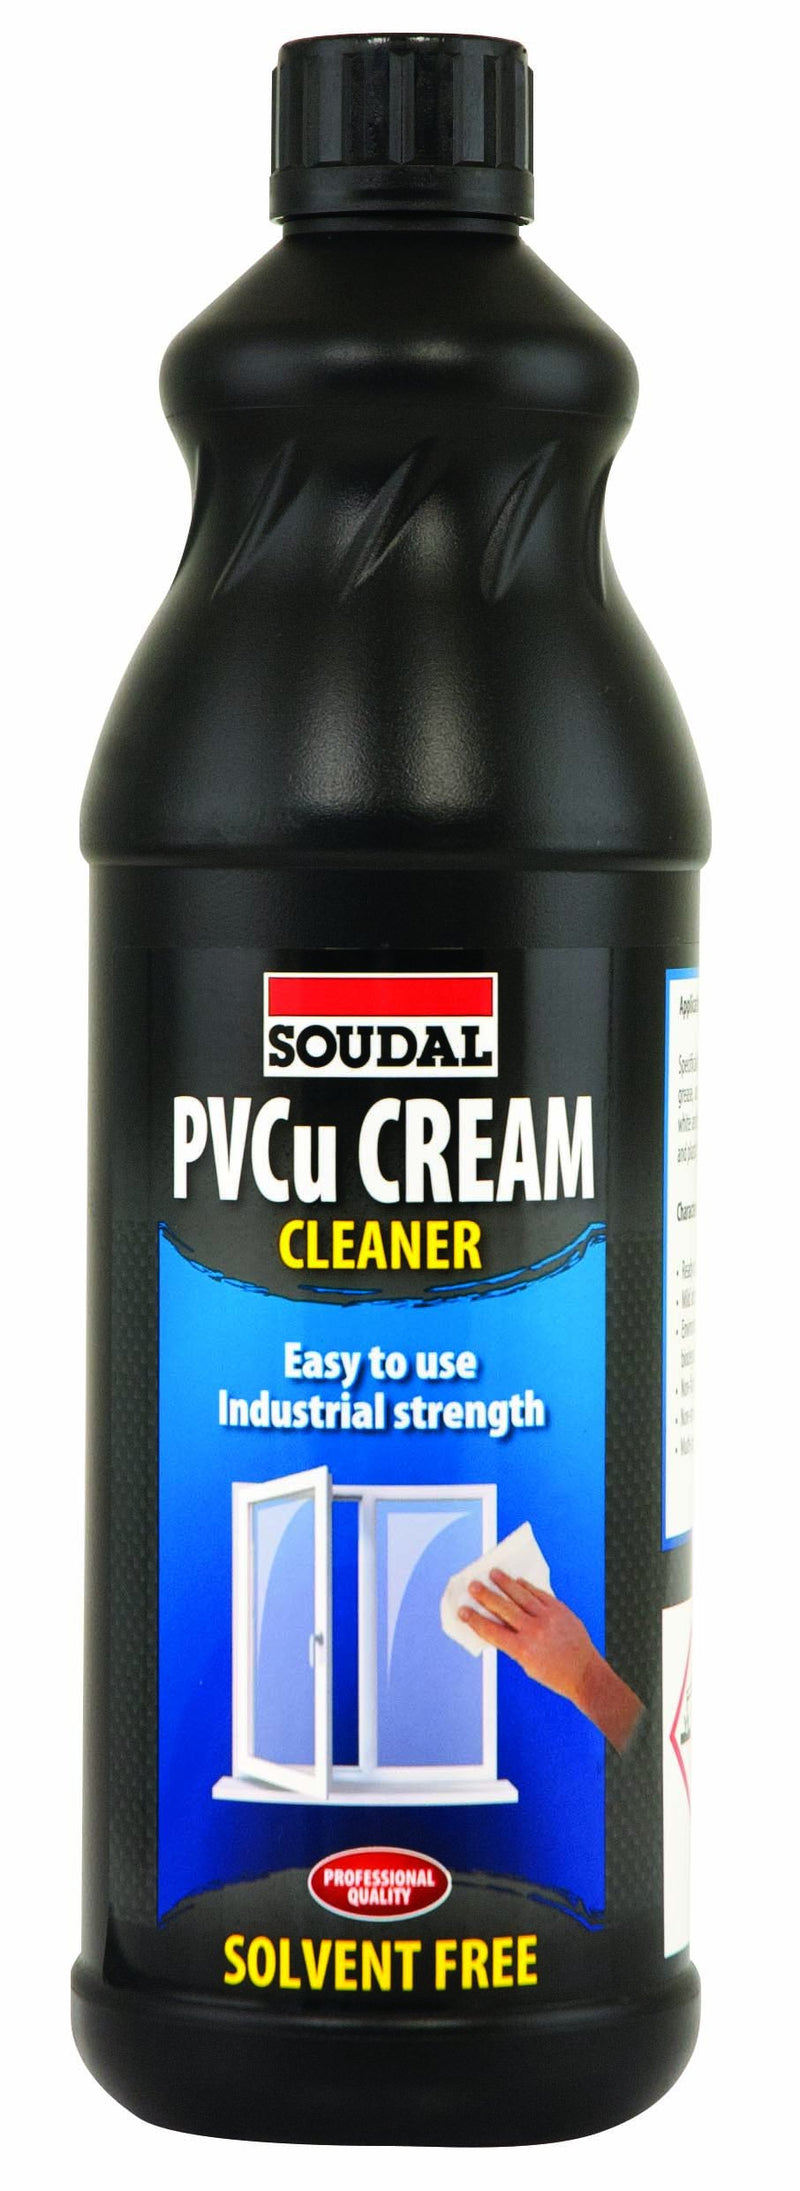 PVCu CREAM CLEANER - C2B Trade Store